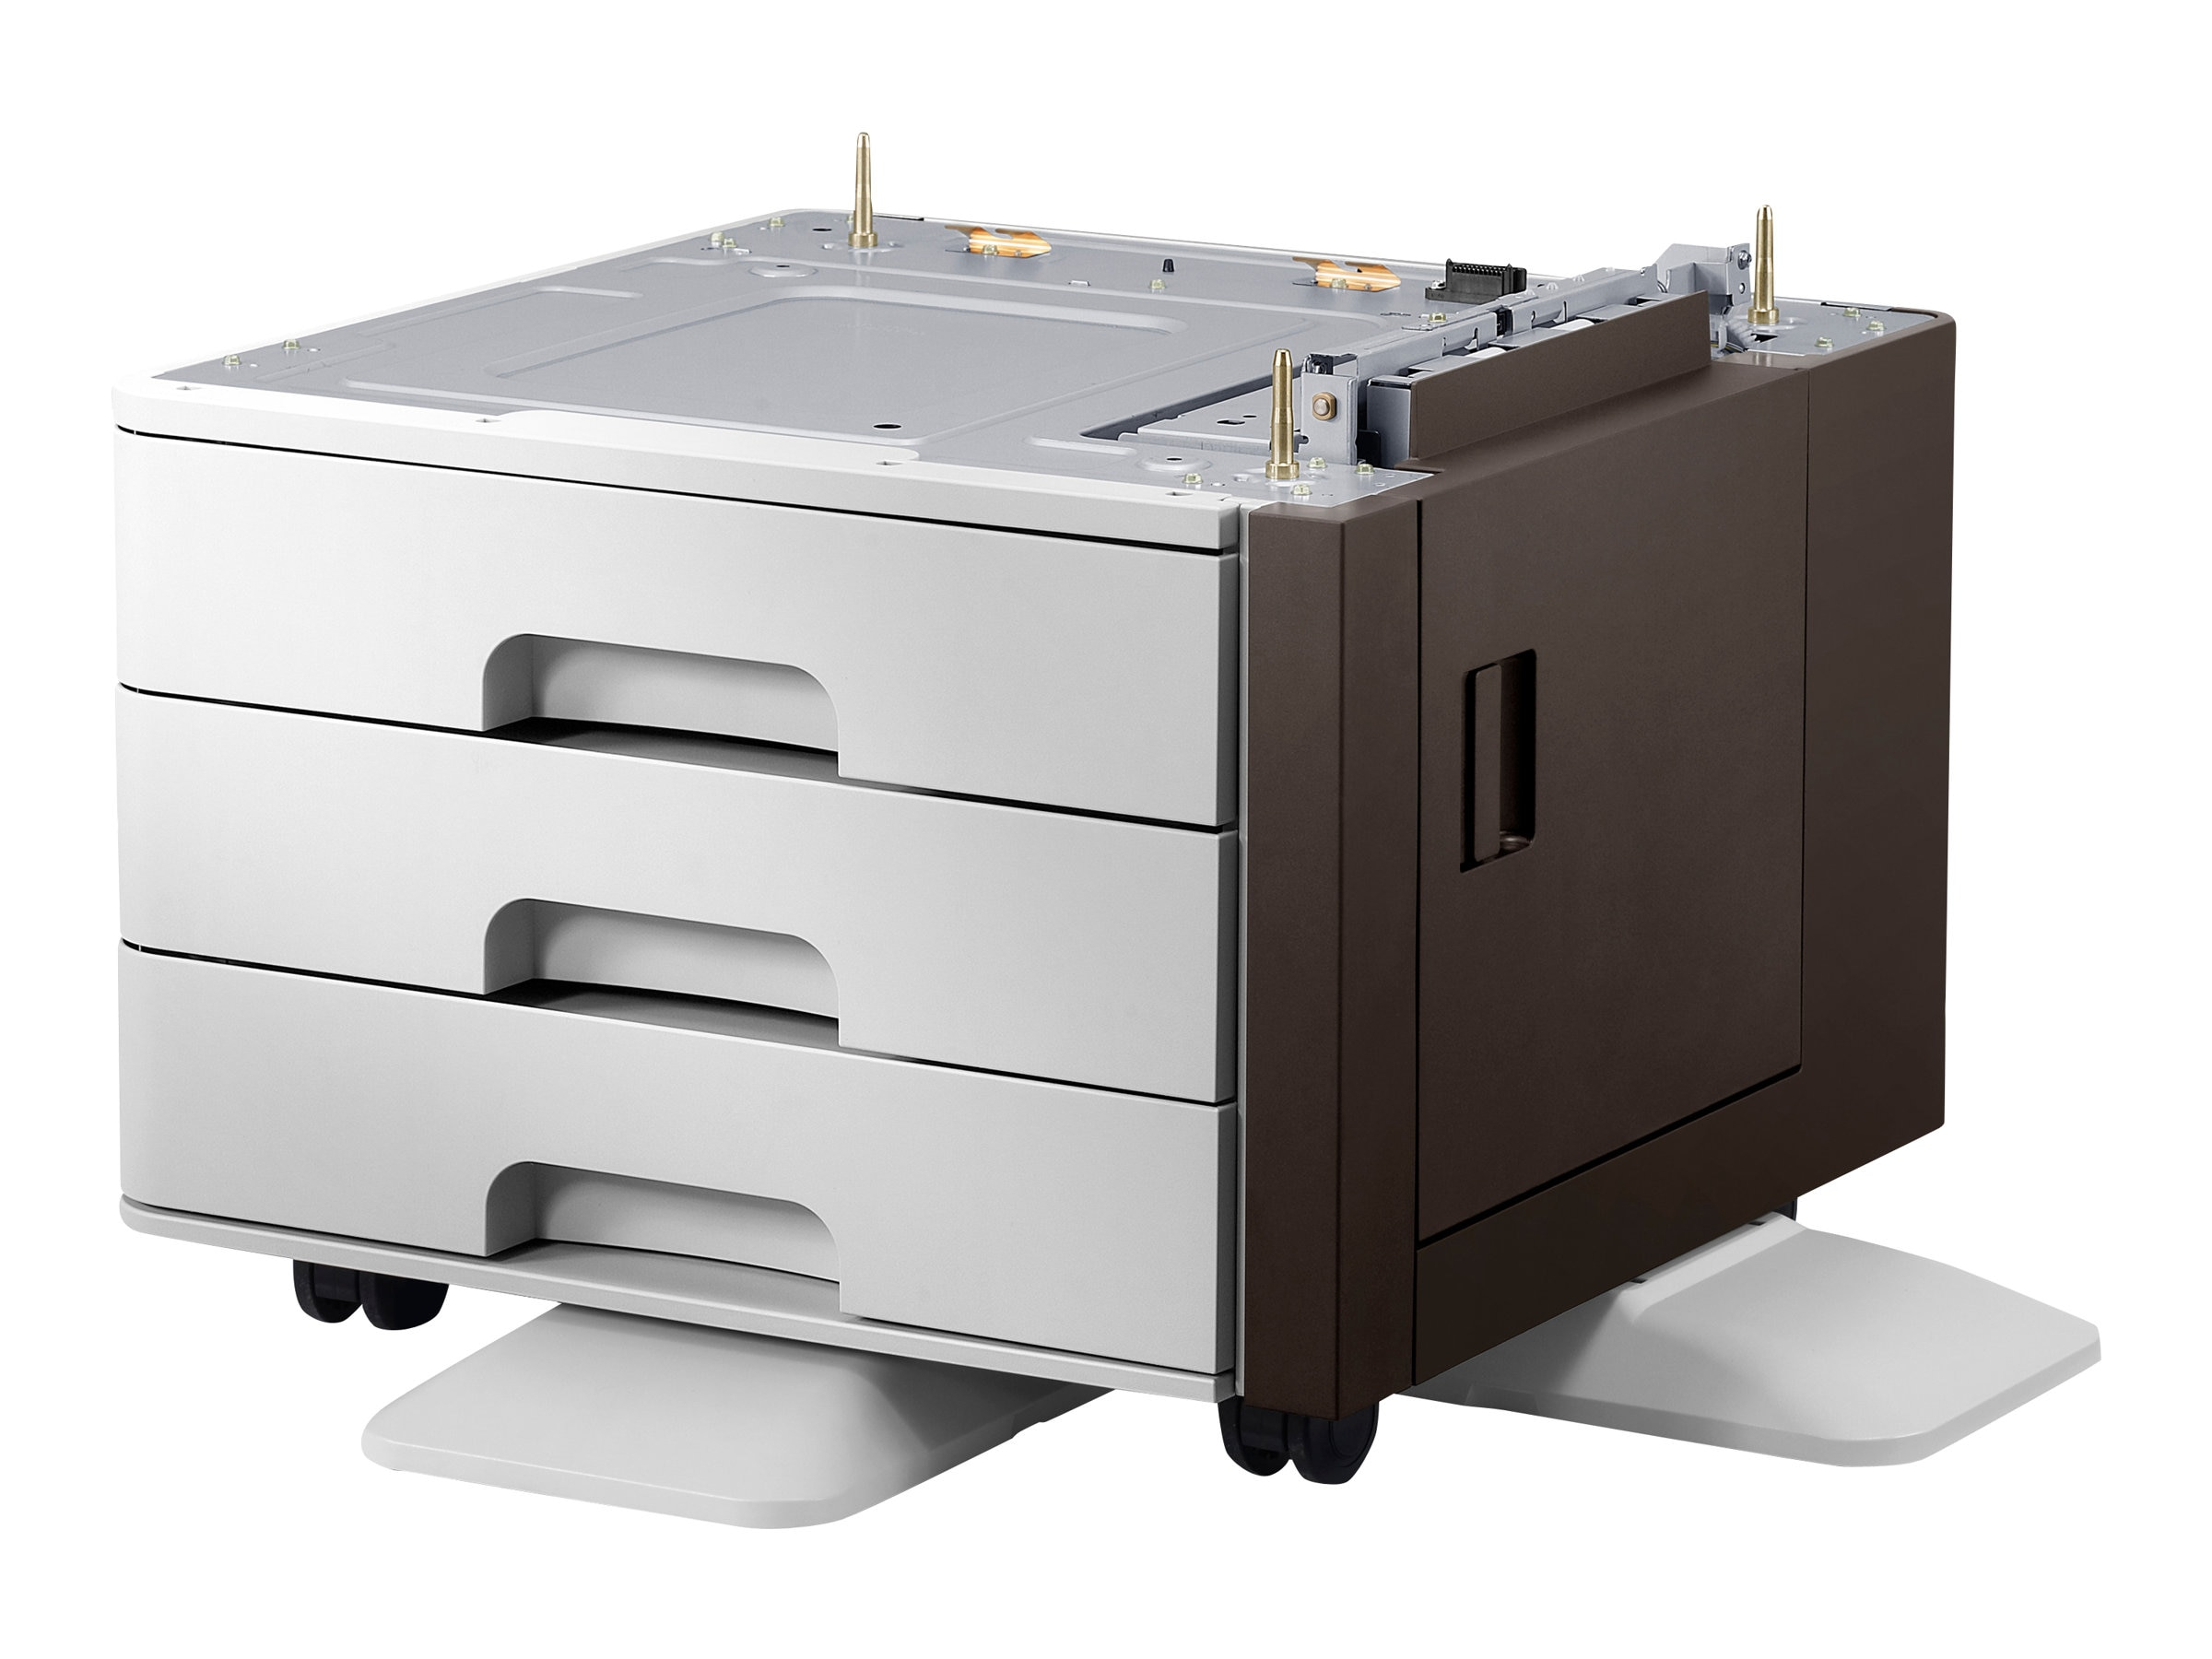 Samsung CLX-S8640T 1,560-Sheet Triple Cassette Feeder, CLX-S8640T, 30618590, Printers - Input Trays/Feeders